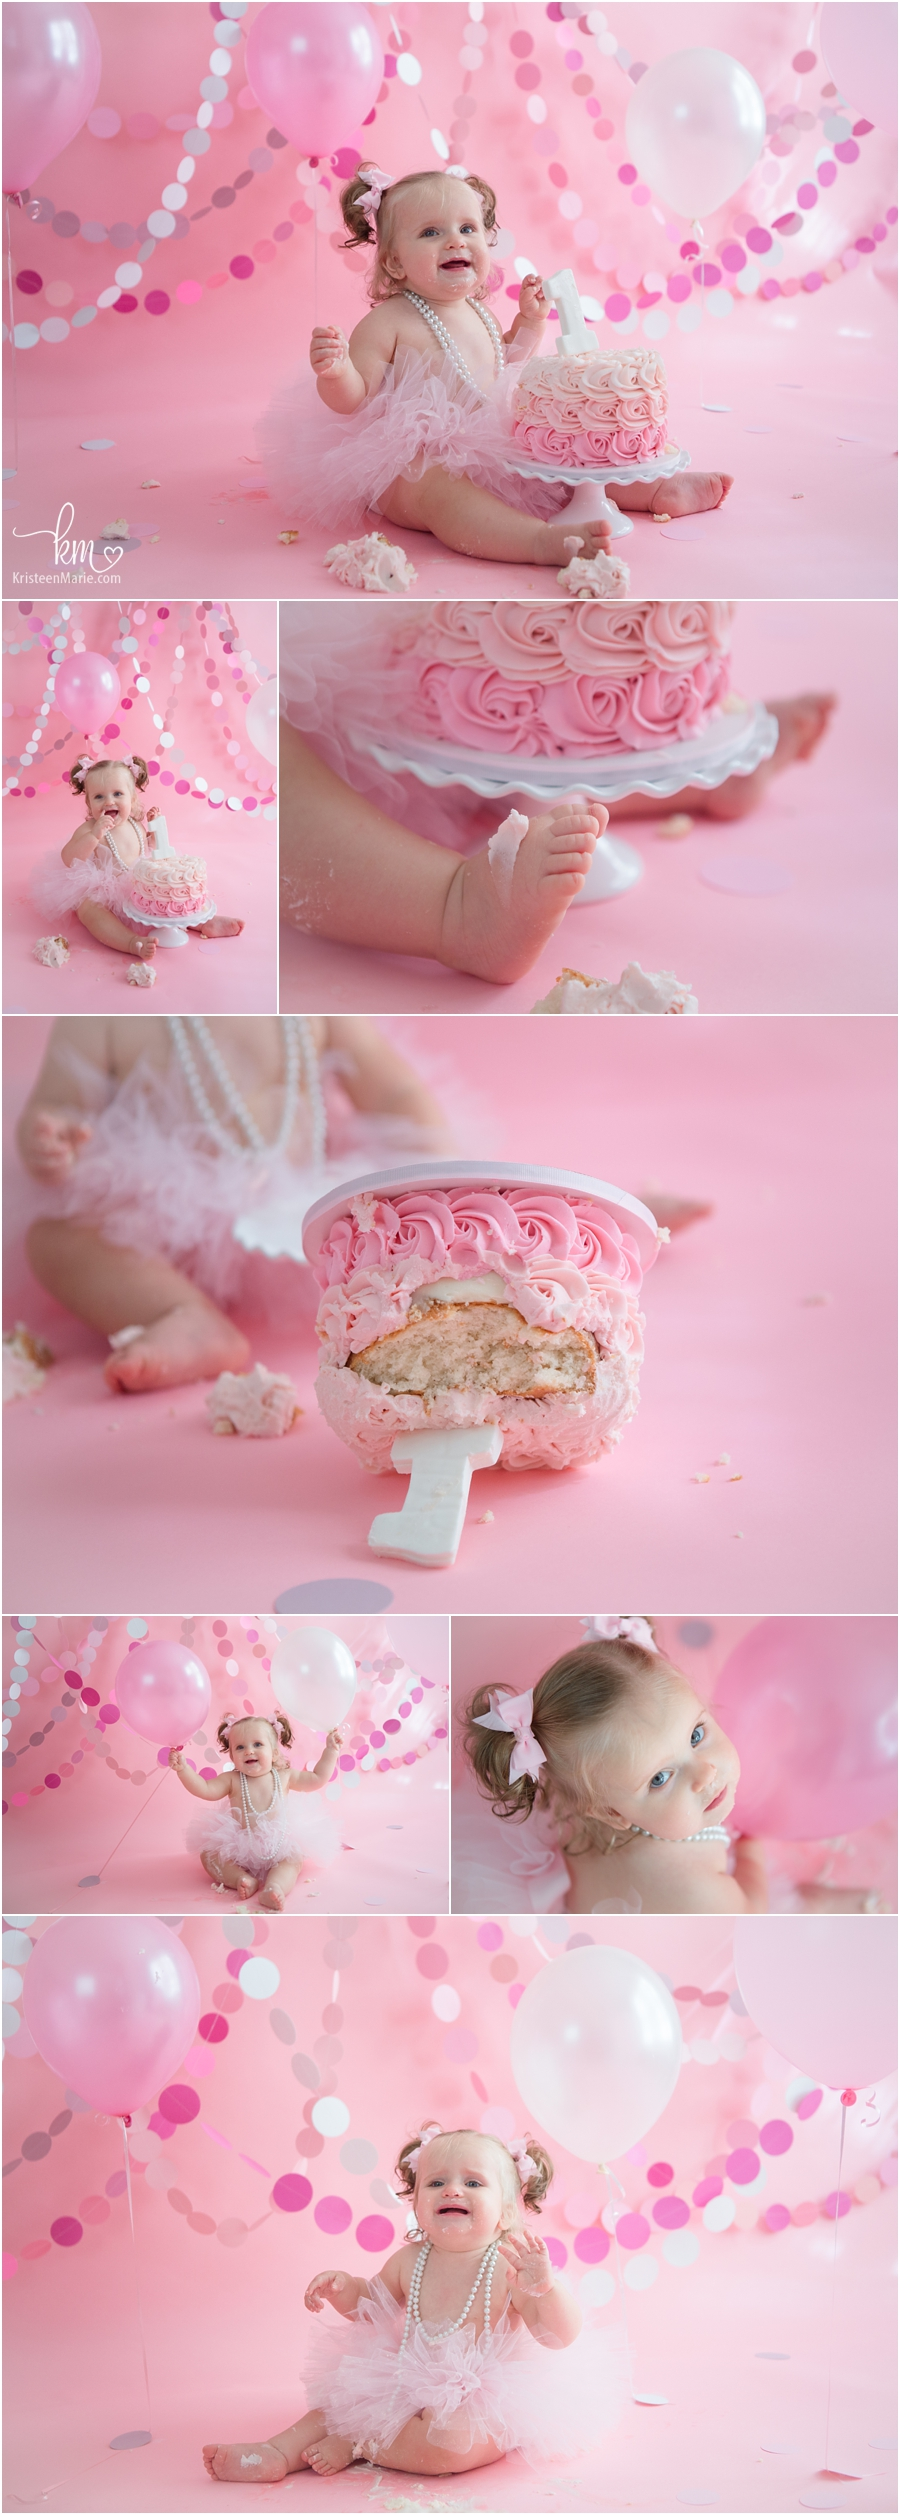 pink cake smash session - pink and white 1st birthday photography - adorable!